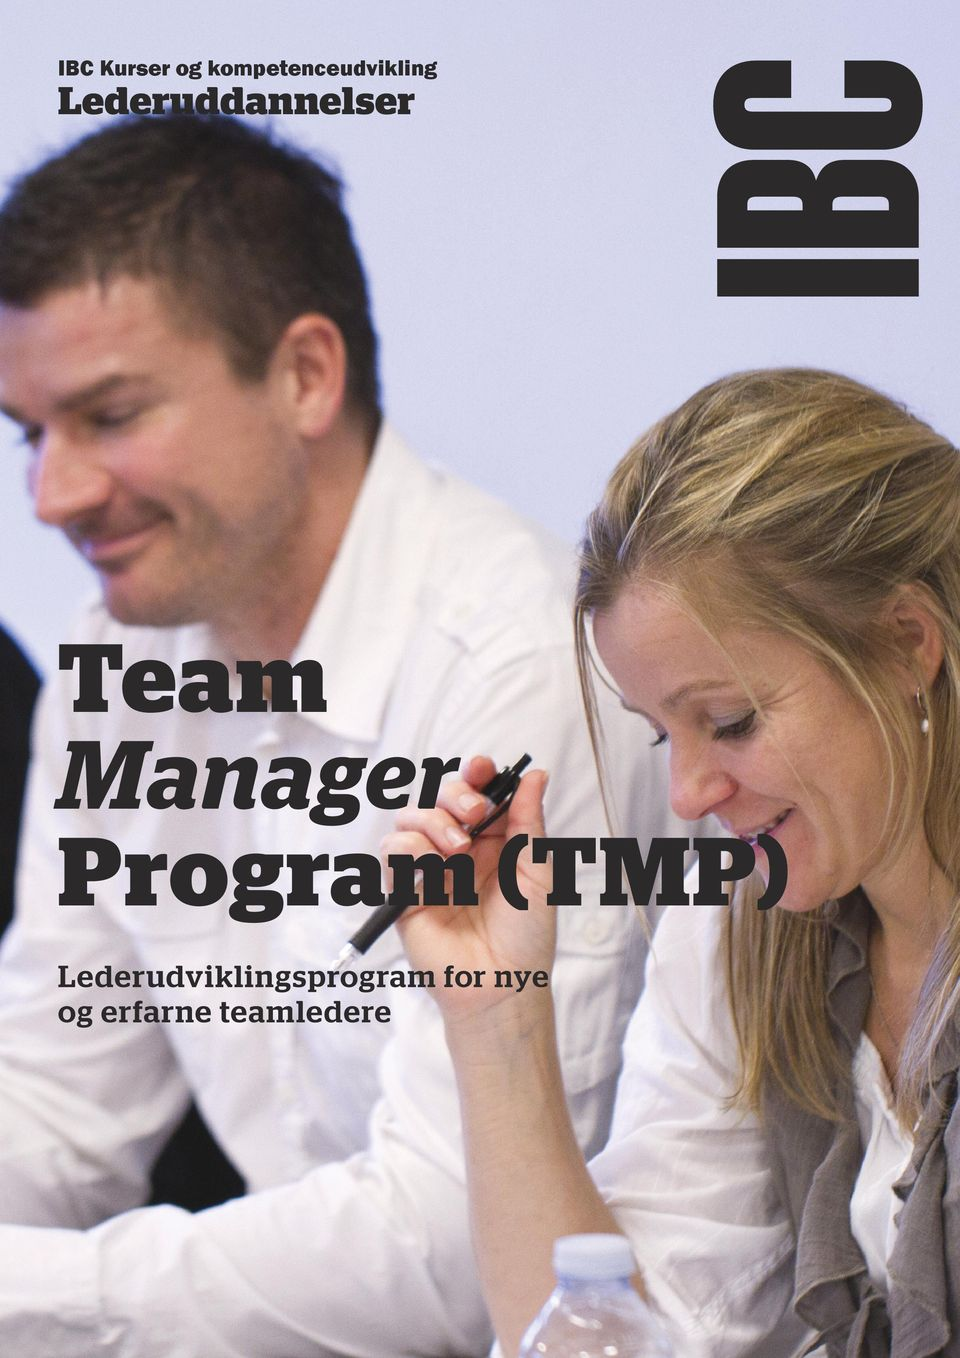 Manager Program (TMP)